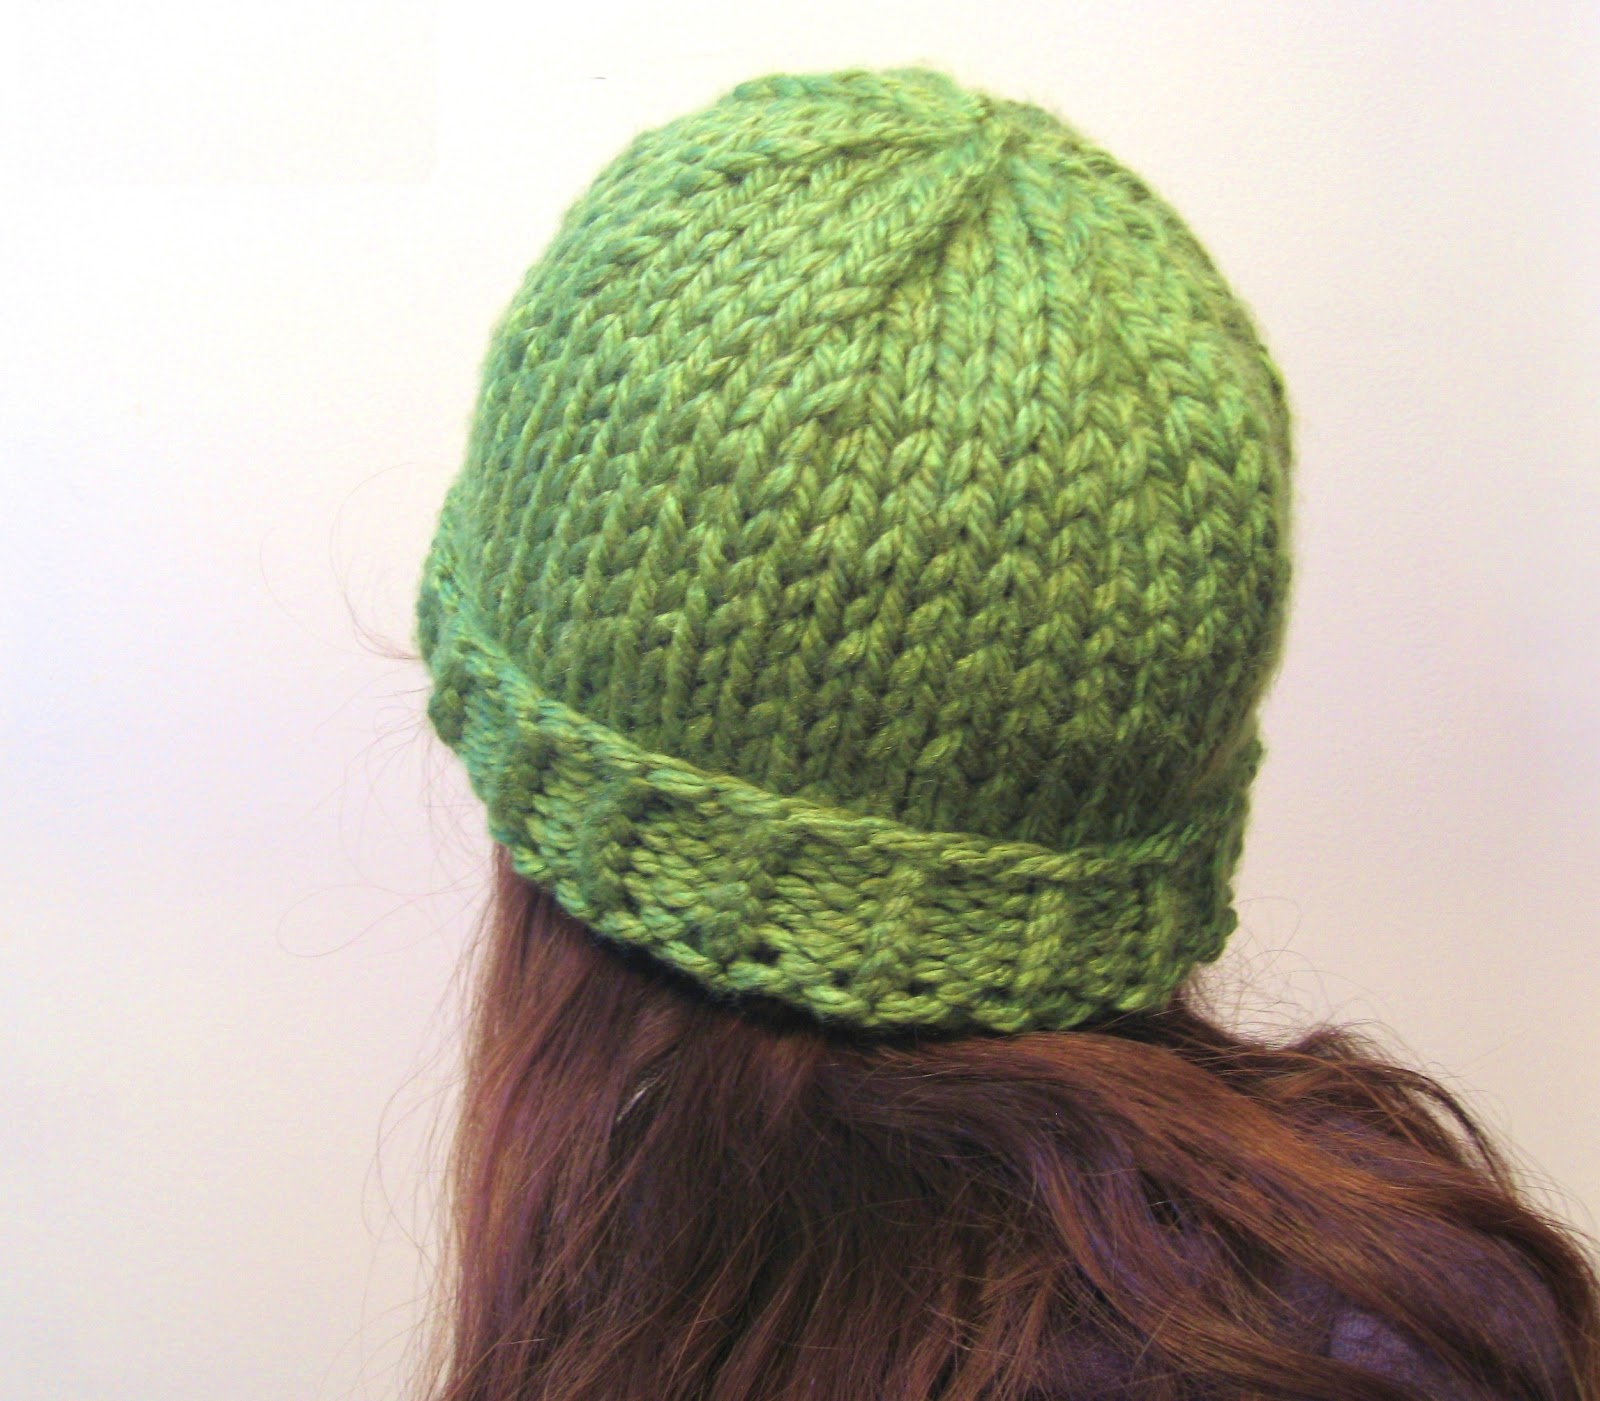 Knitting Hat Patterns Easy : megan E sass handknits: Free Knitting Pattern: Easy Chunky Knit Beanie Hat